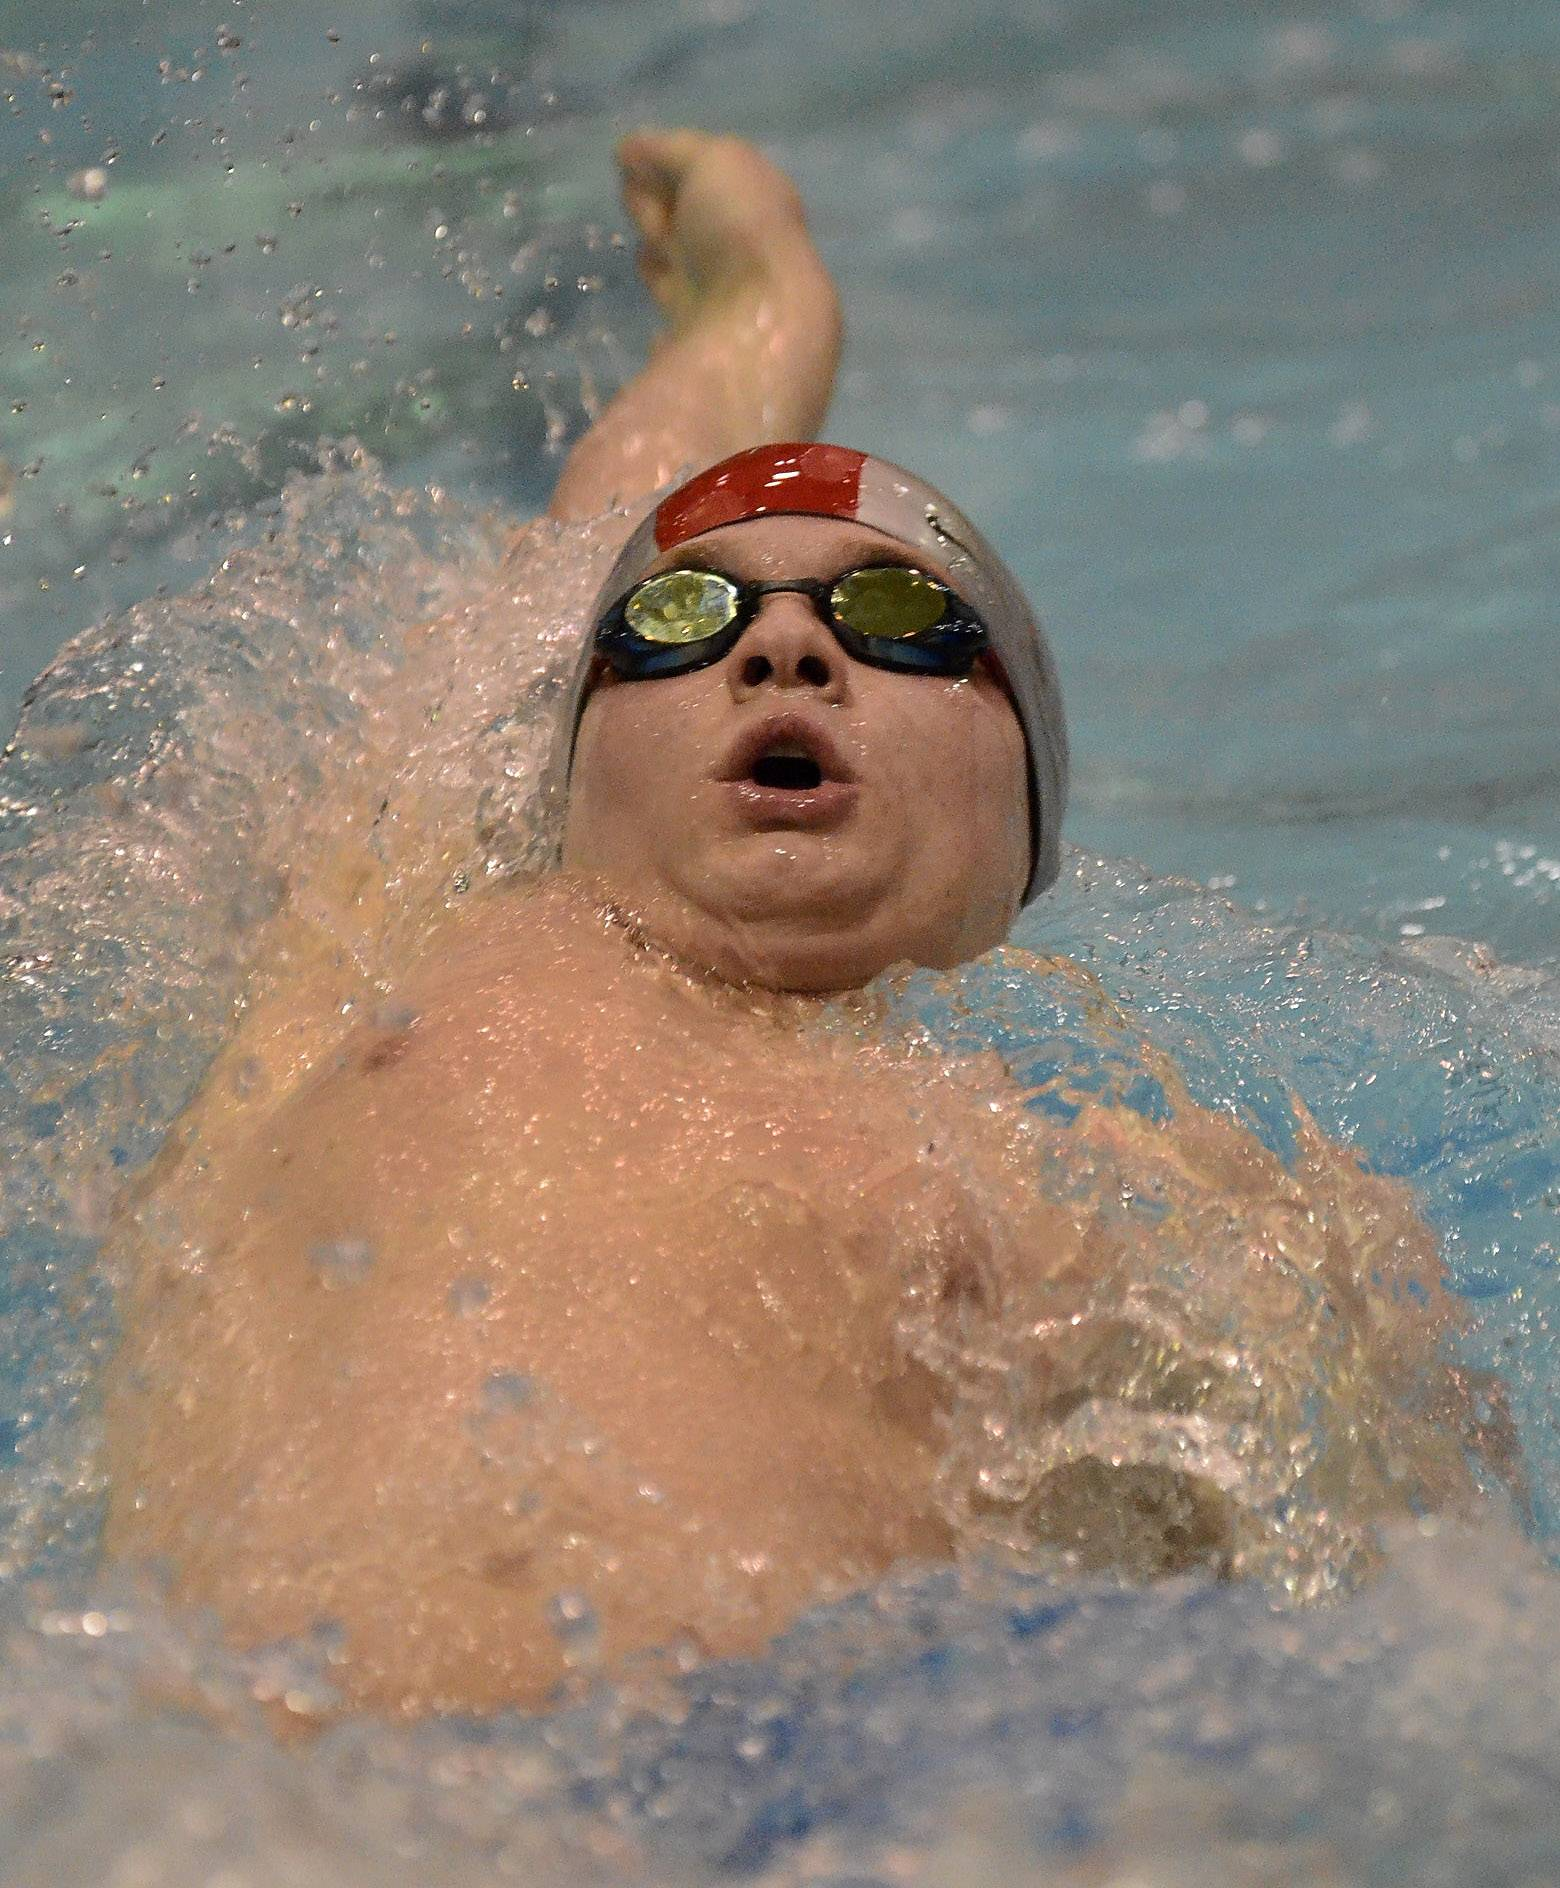 Jake Noel of Wheeling competes during the boys swimming state meet prelims Friday at Evanston Township High School.